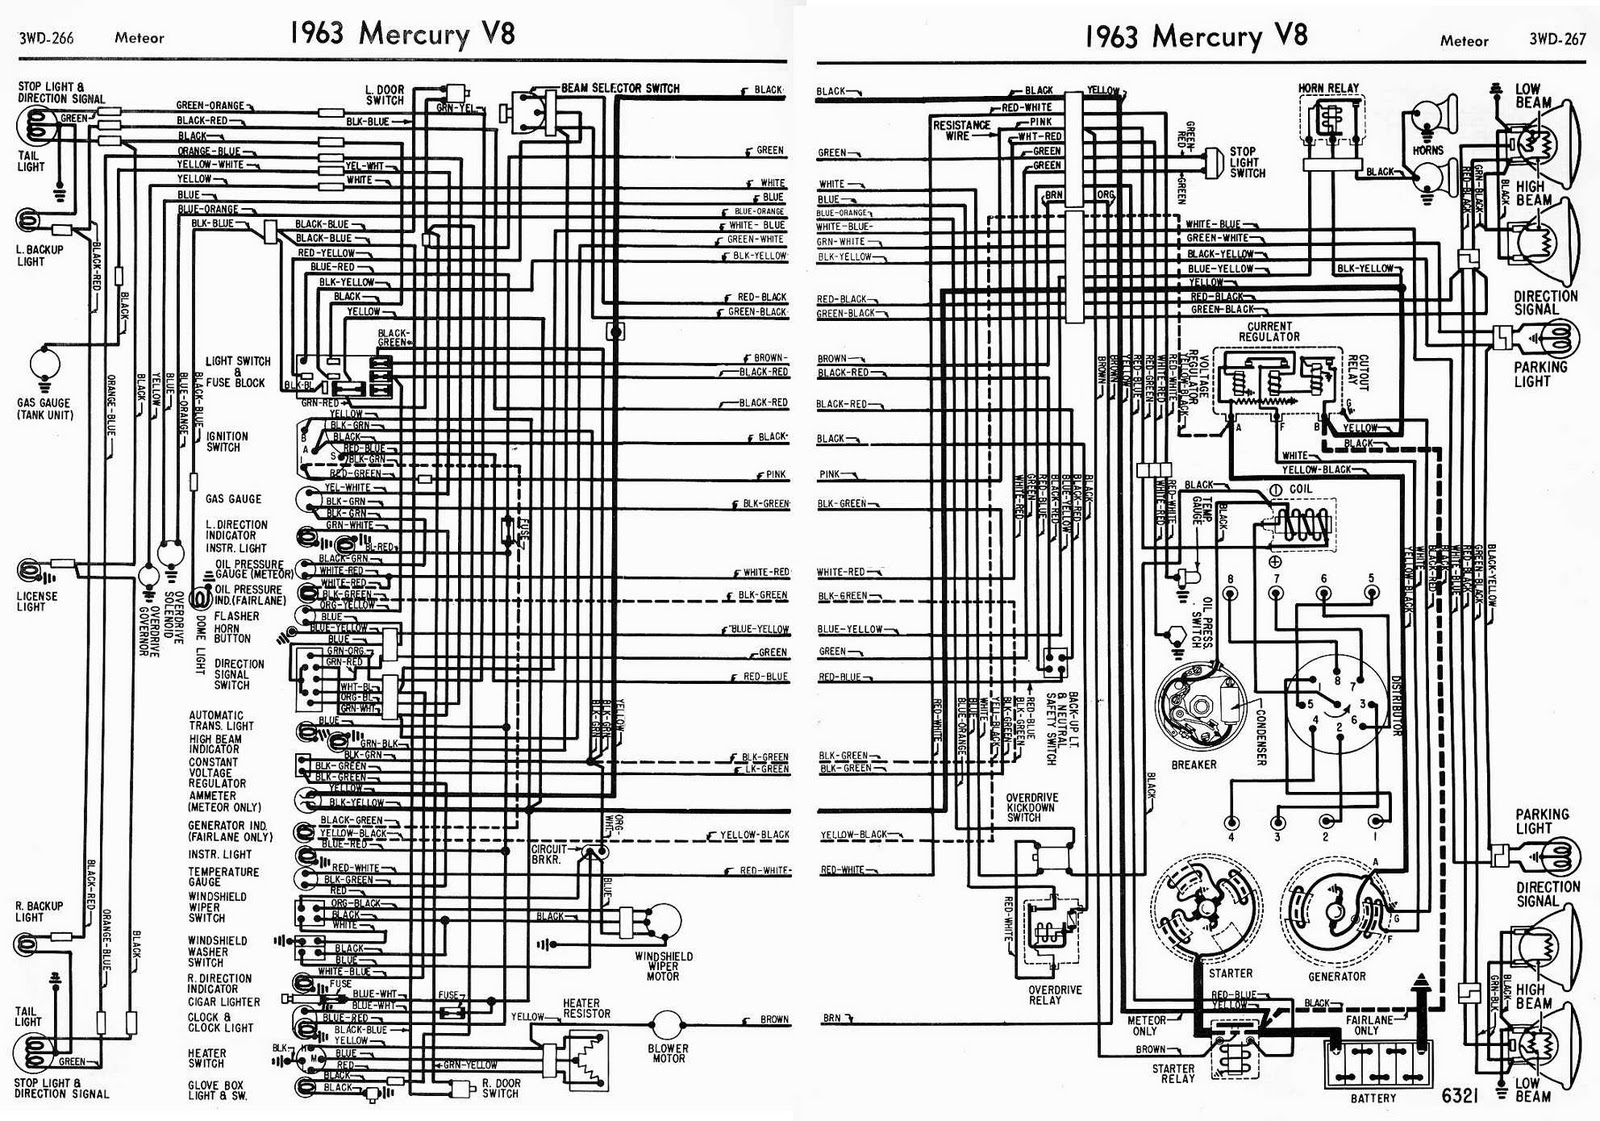 1997 Polaris Trail Boss 250 Wiring Diagram Trusted Schematics Honda Fuse Scrambler 500